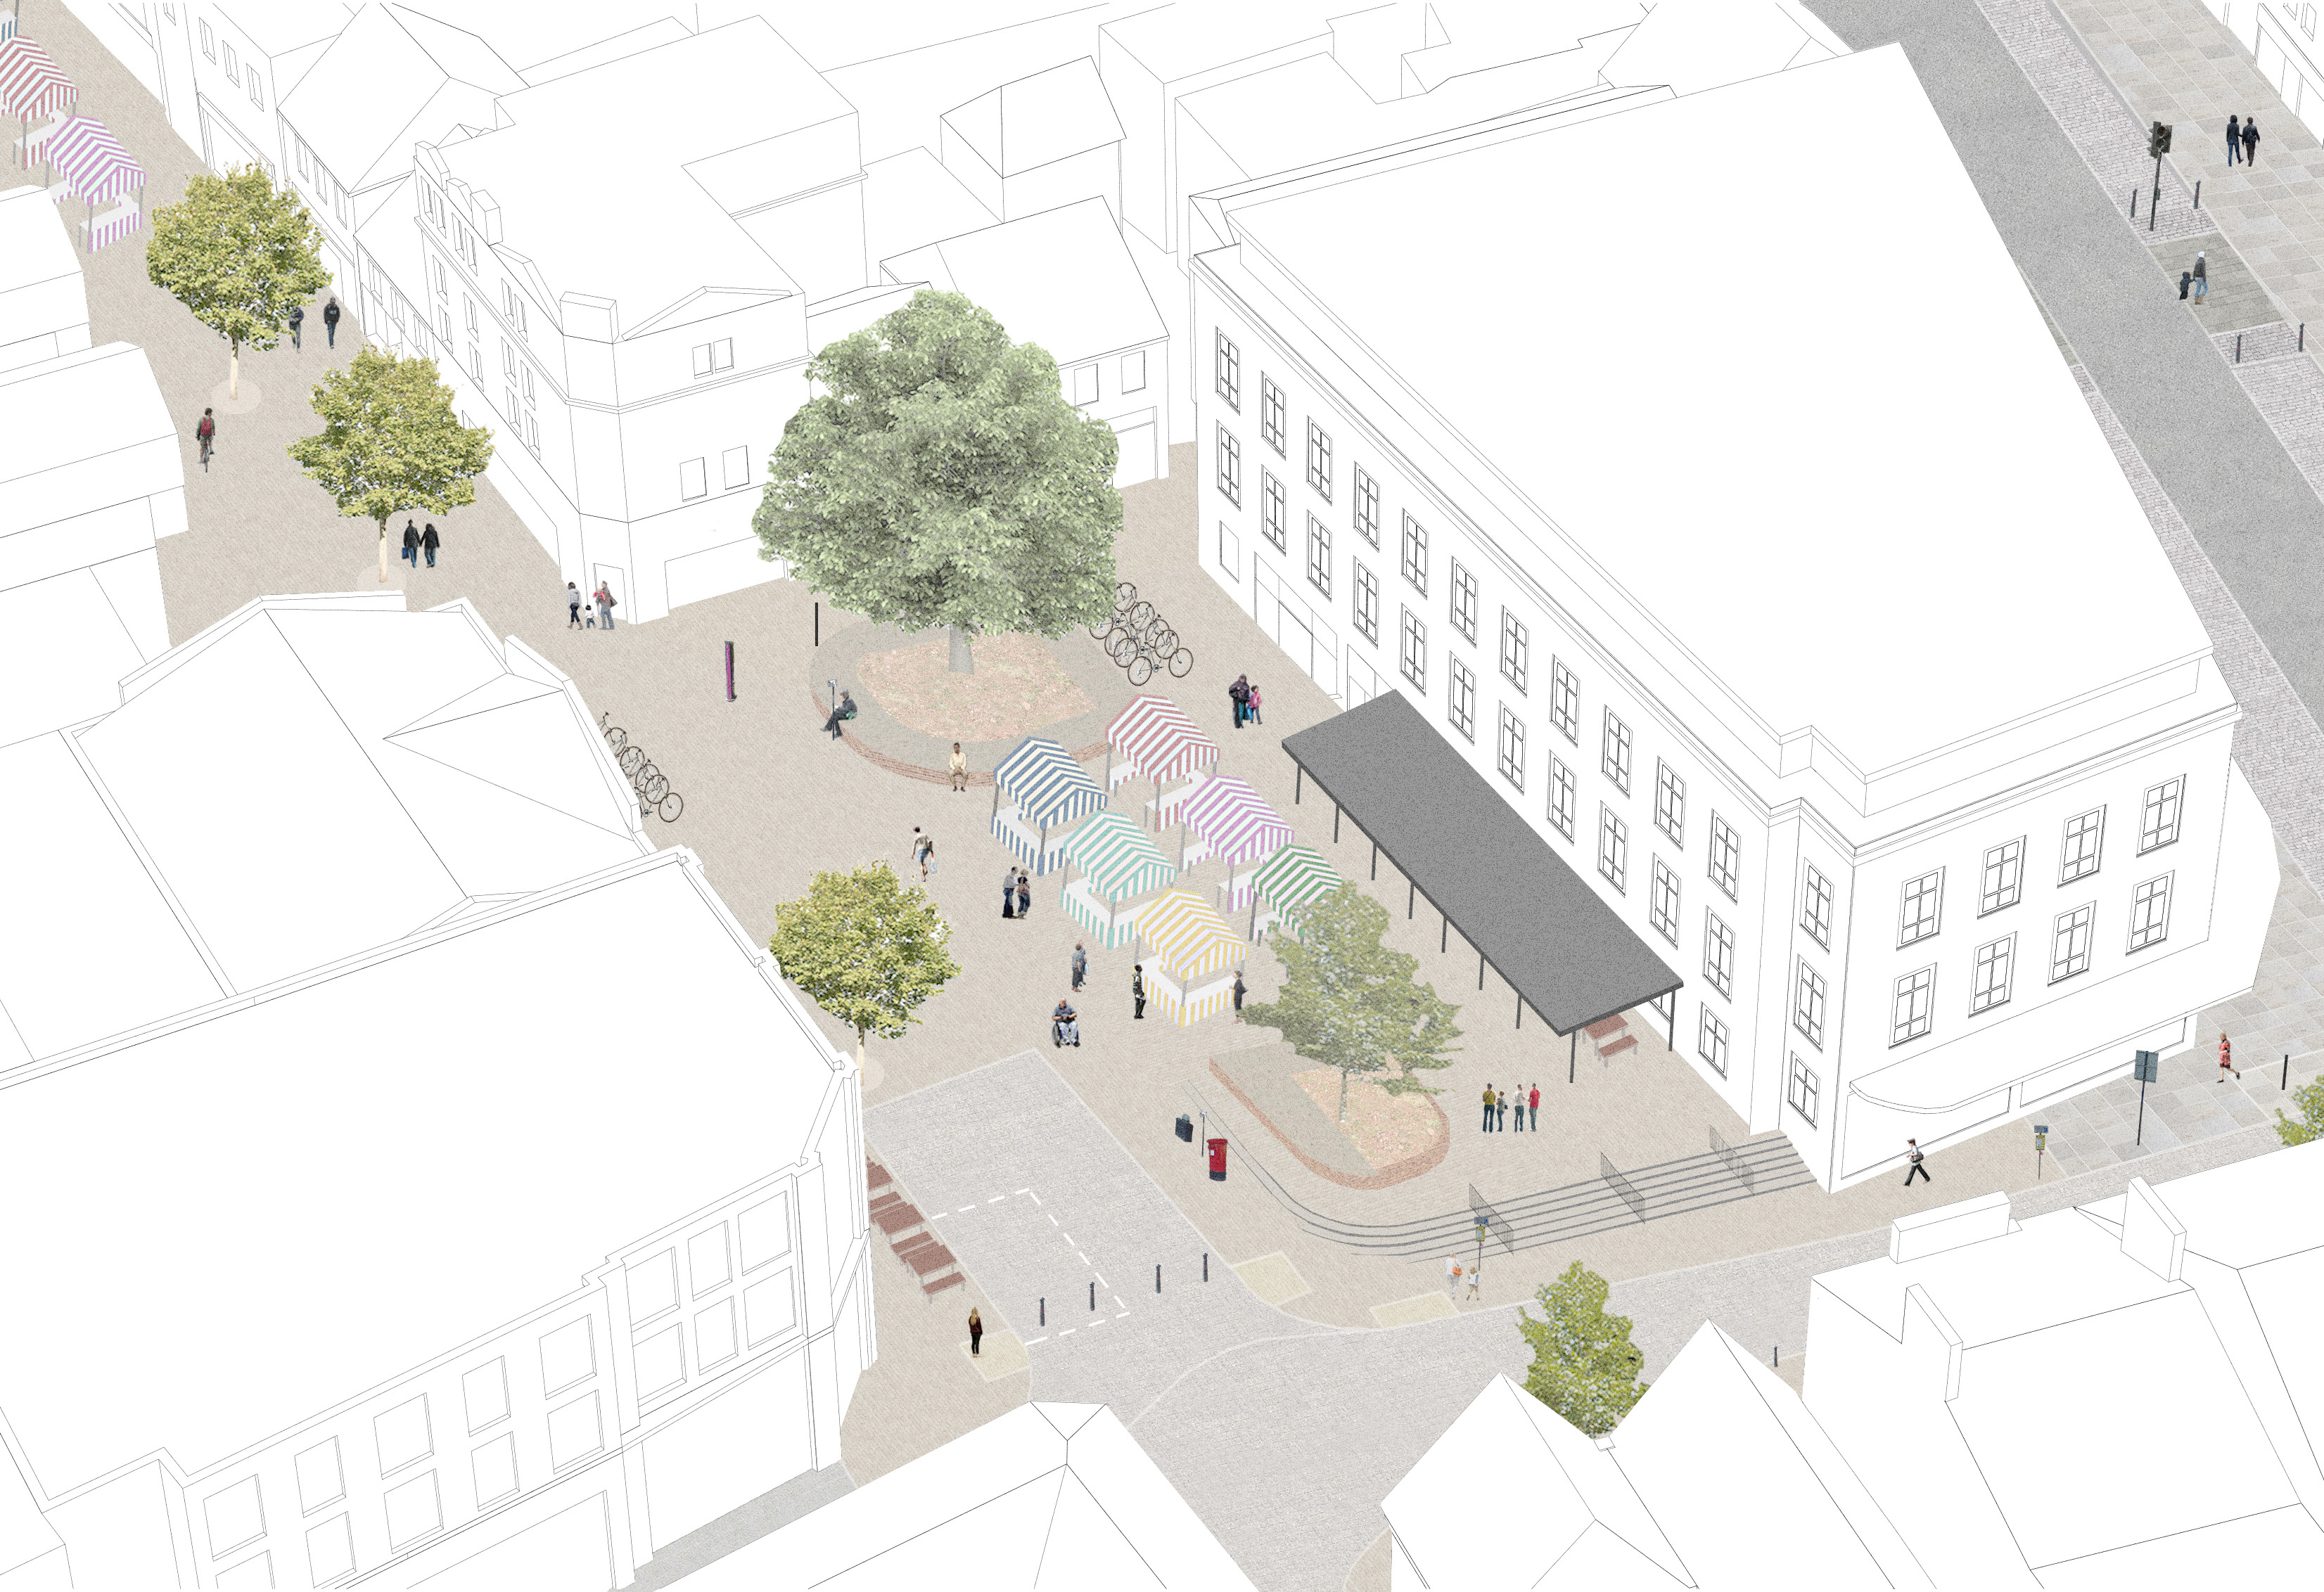 Artists impression of the new design for the square